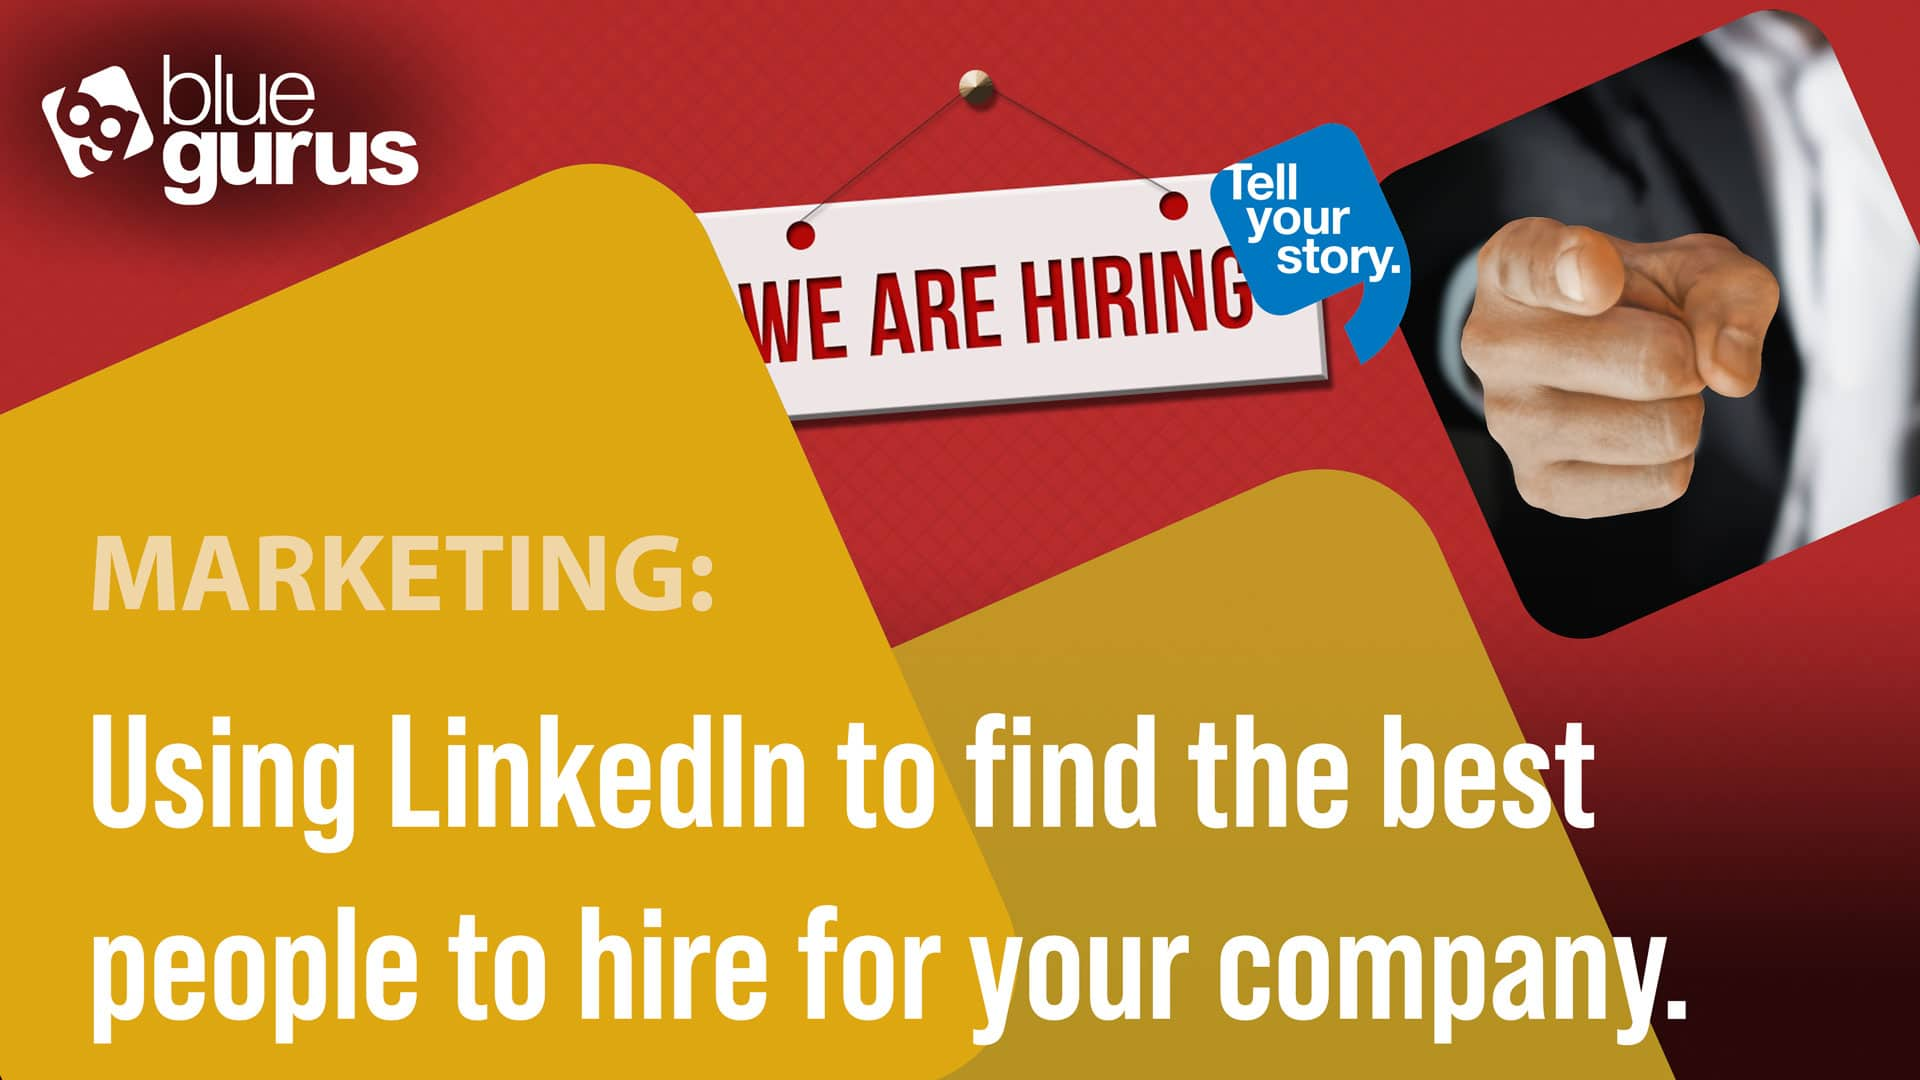 Using LinkedIn to find the best people to hire.